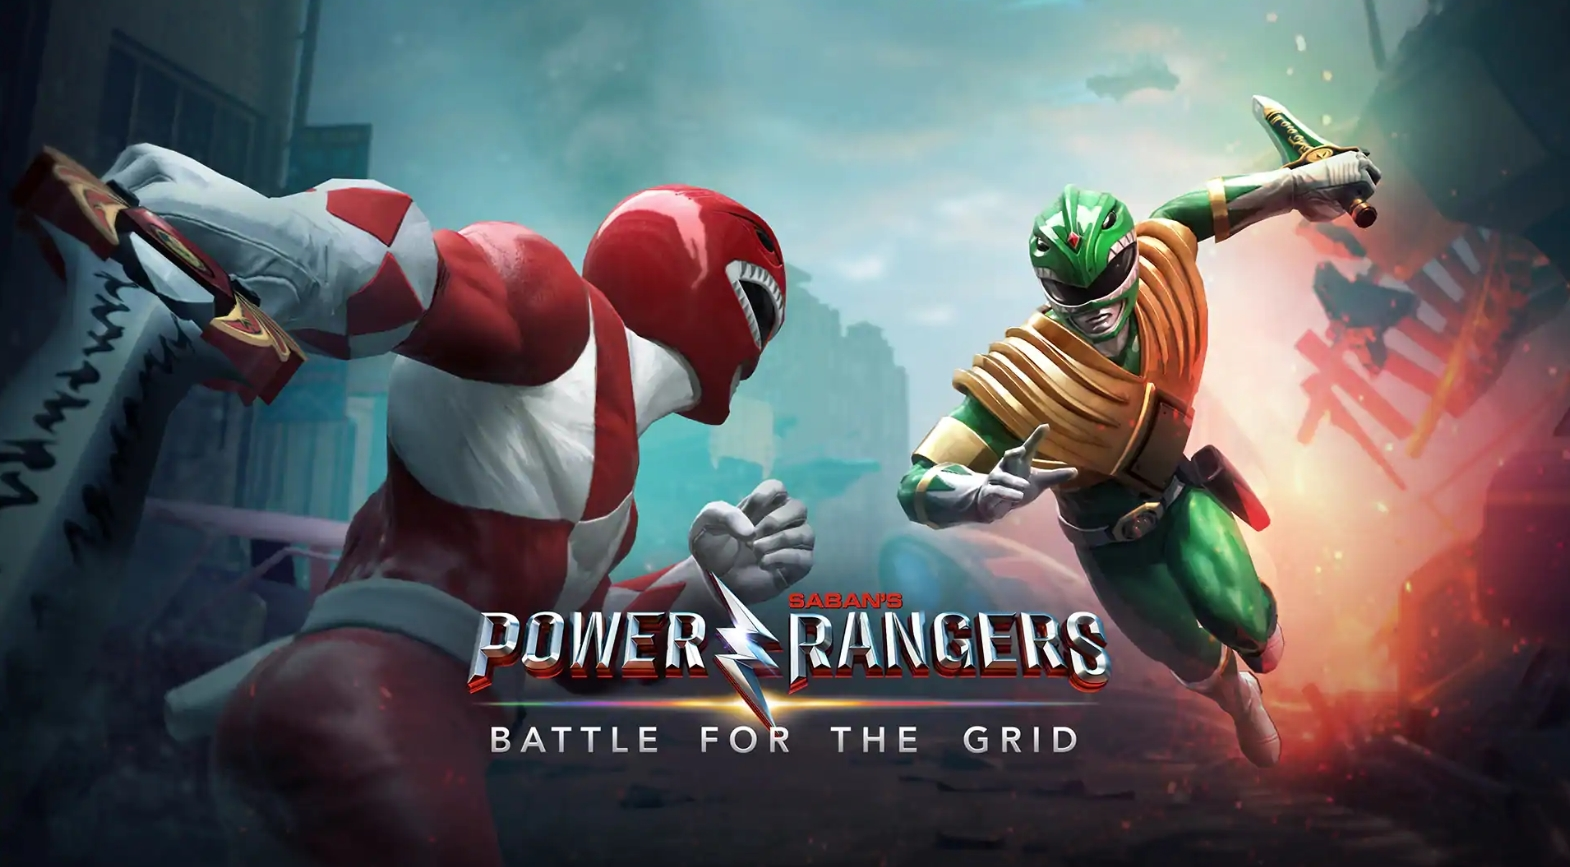 Power Rangers: Battle for the Grid launches on Google Stadia on June 1